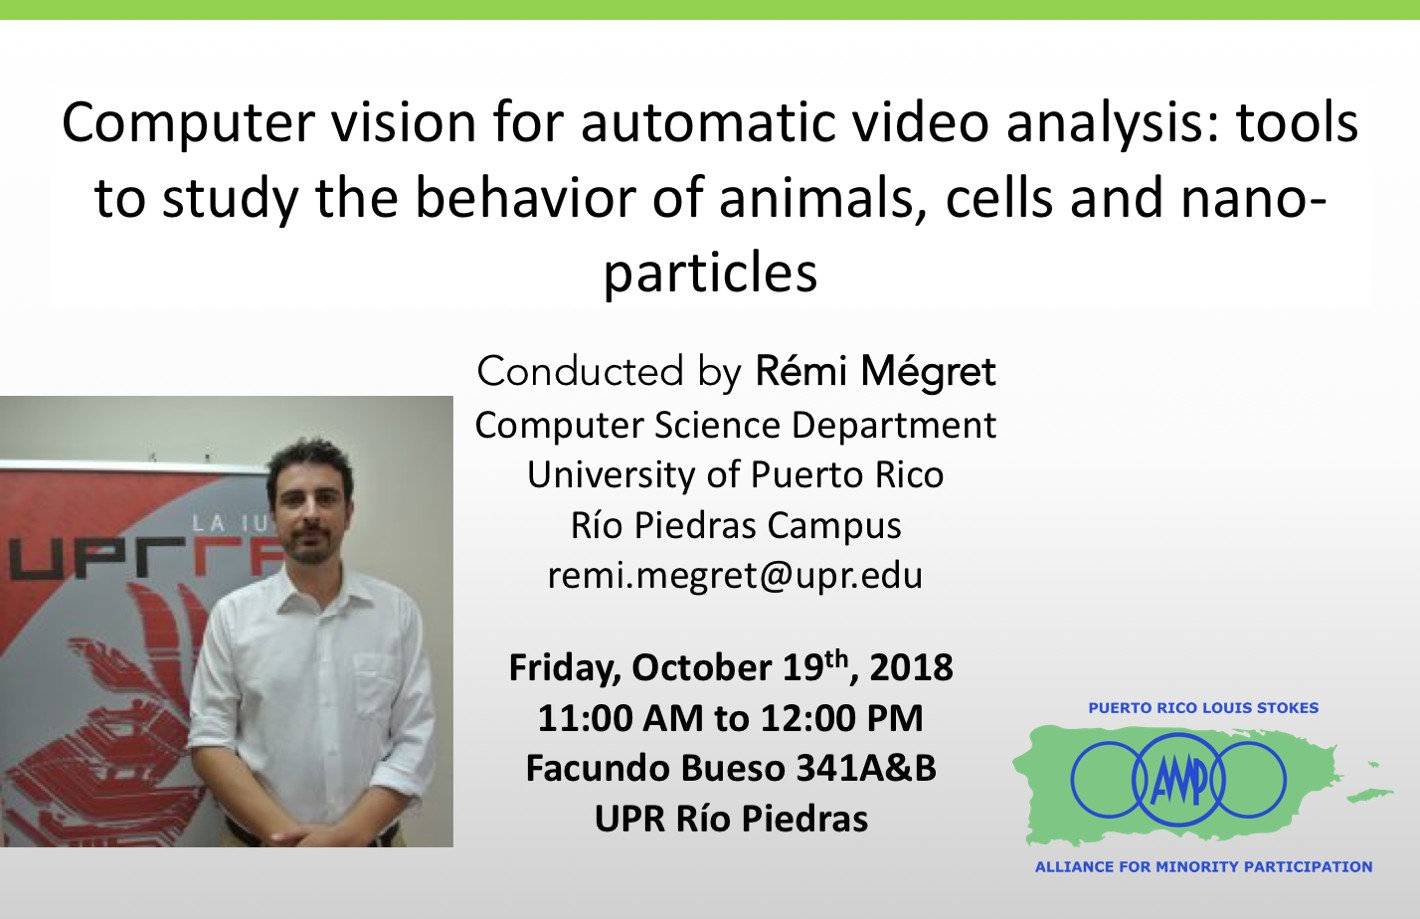 Seminario Computer vision for automatic video analysis: tools to study the behavior of animals, cells and nano-particles @ Facundo Bueso Salón FB341 | Ensenada | Baja California | México